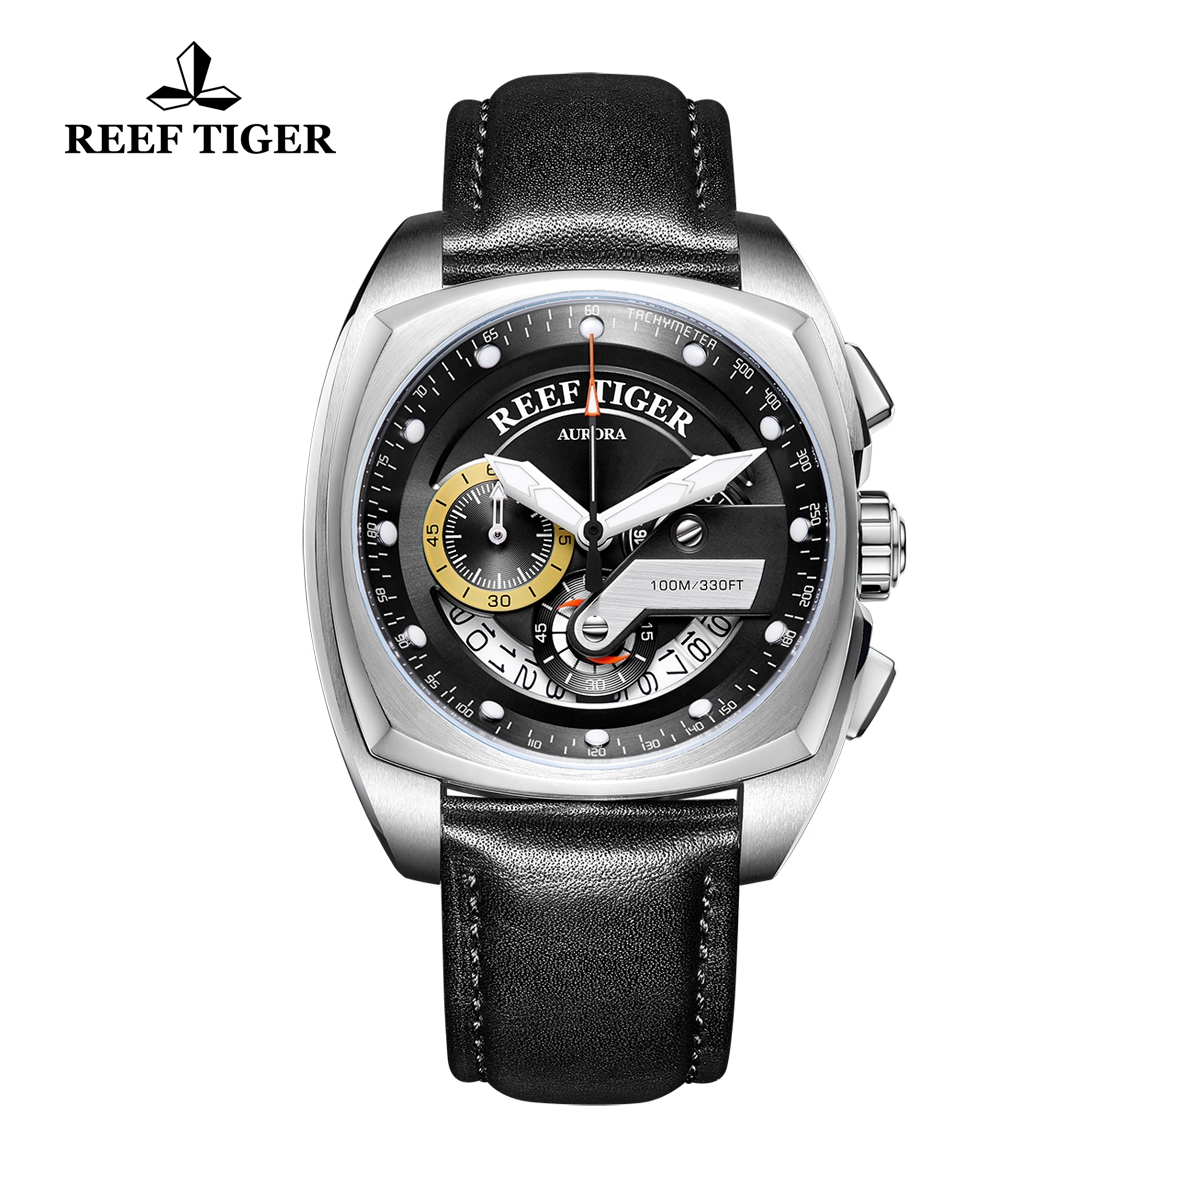 Reef Tiger Aurora Formula Race Fashion Steel Black Dial Leather Strap Quartz Watch RGA3363-YBB